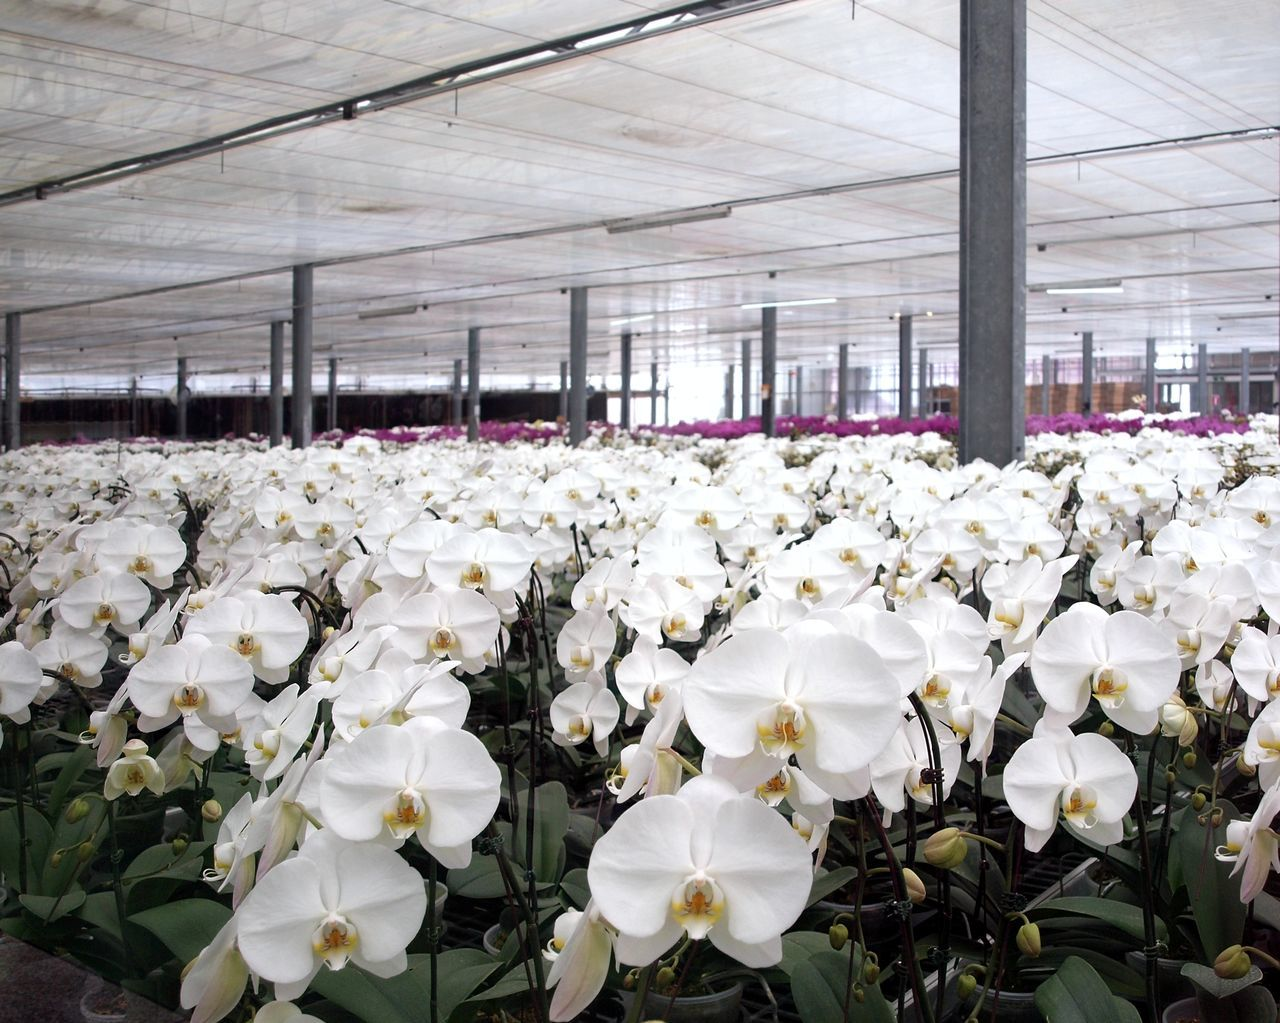 Orchids of the Phalaenopsis genus in a large agricultural growing facility Agriculture Flower Flower Head Flower Pots Greenhouse Horticulture No People Orchid Orchid Gardens Phalaenopsis Phalaenopsis Orchid Plant Nursery Potted Plants White Orchids